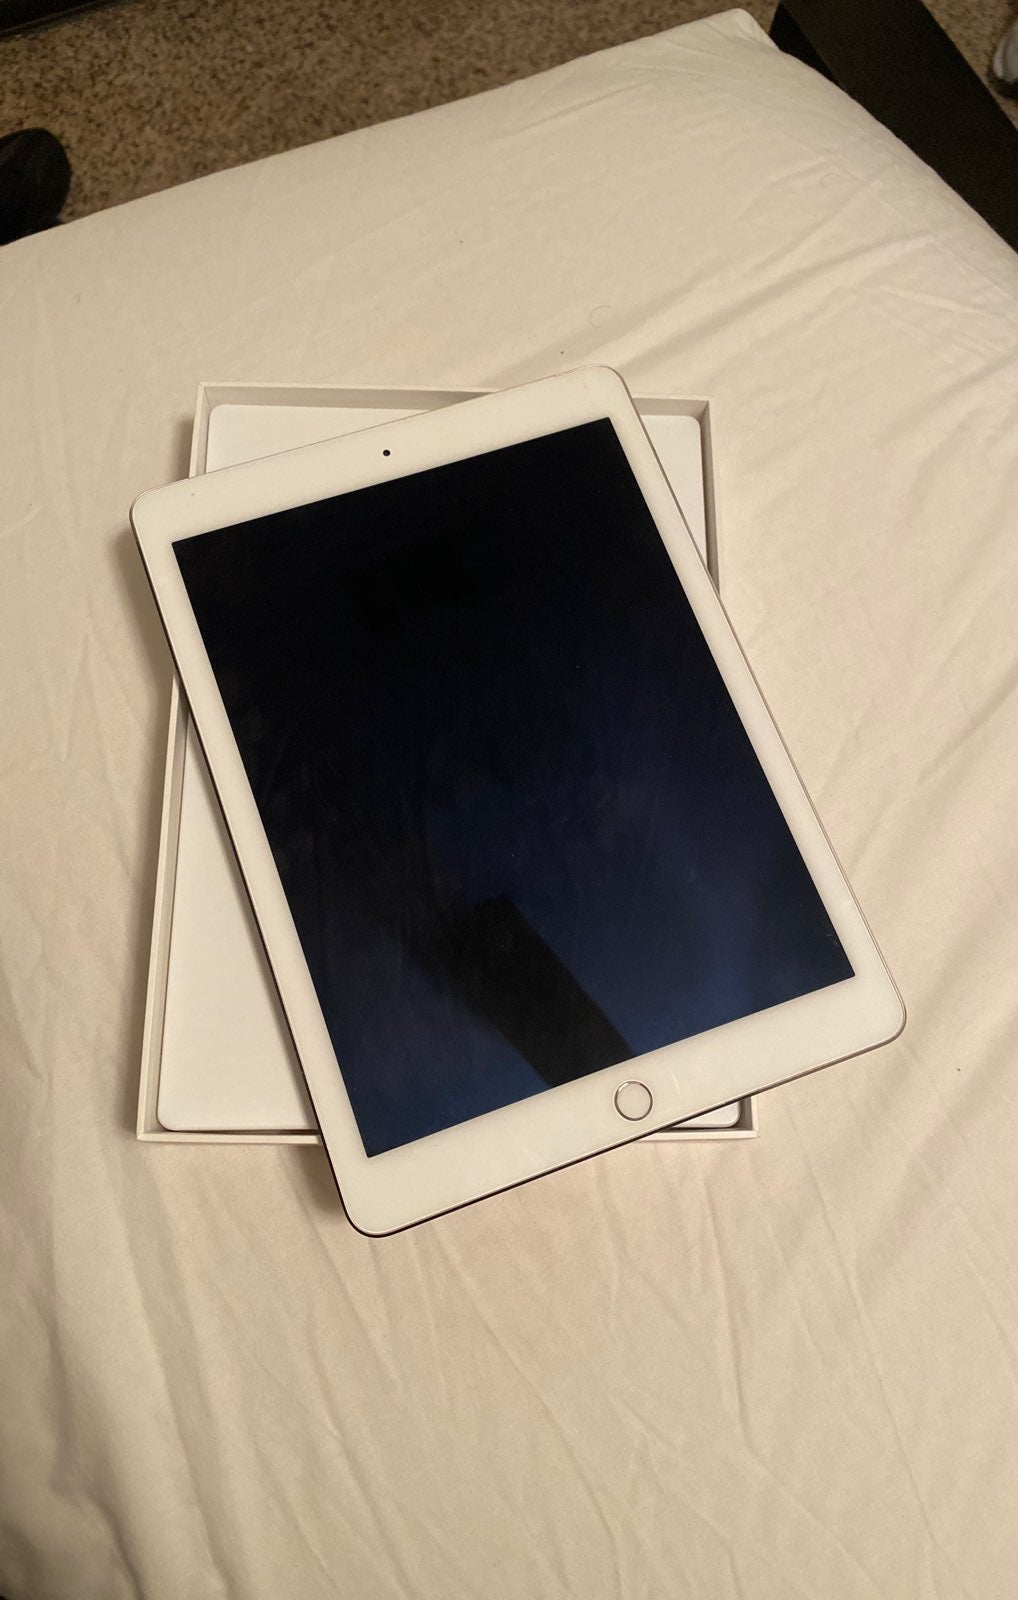 iPad Air 2nd generation Space Gray 64 GB